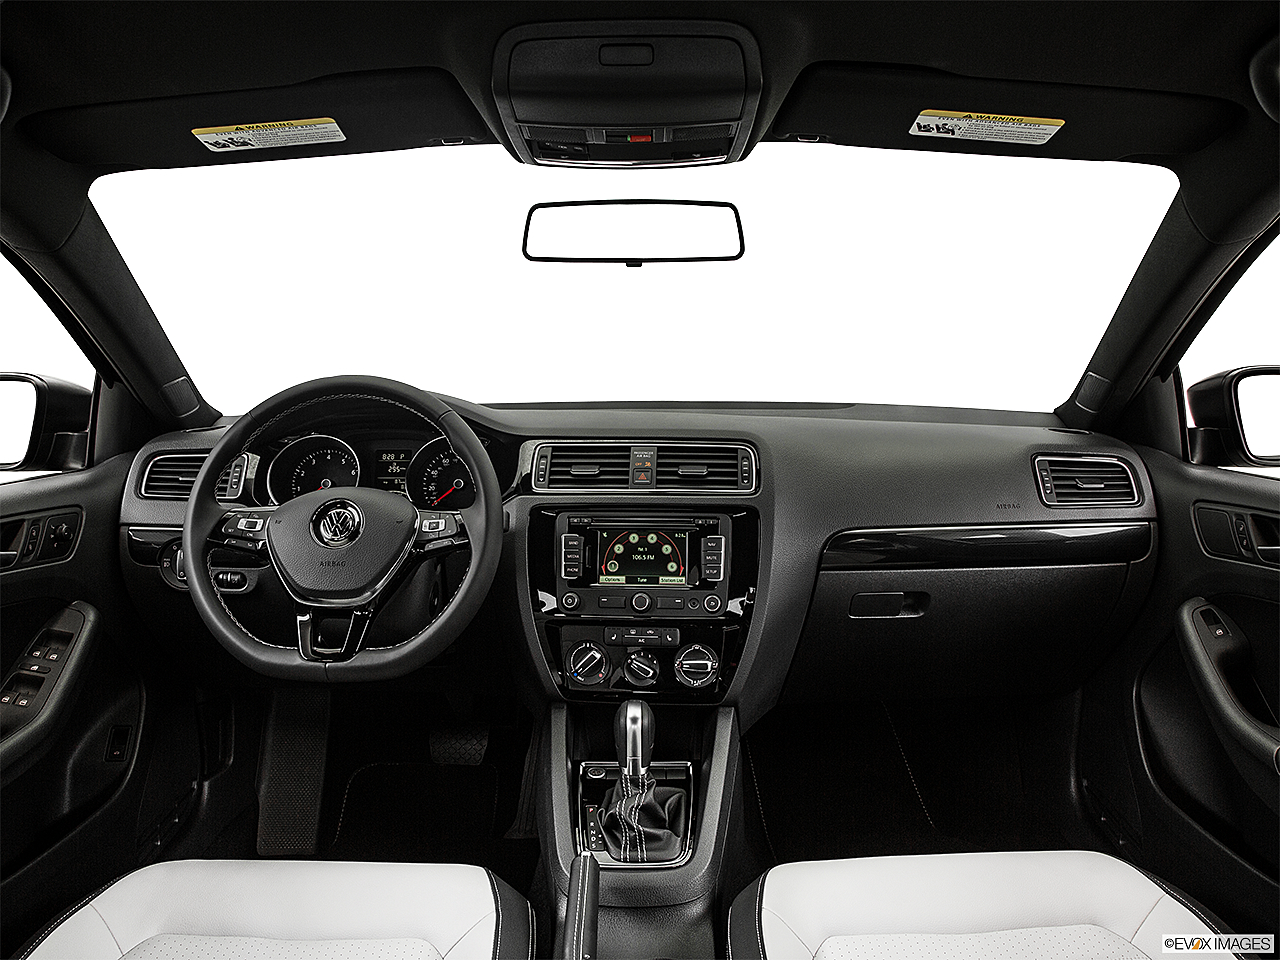 2015 Volkswagen Jetta 1.8T Sport, Centered Wide Dash Shot